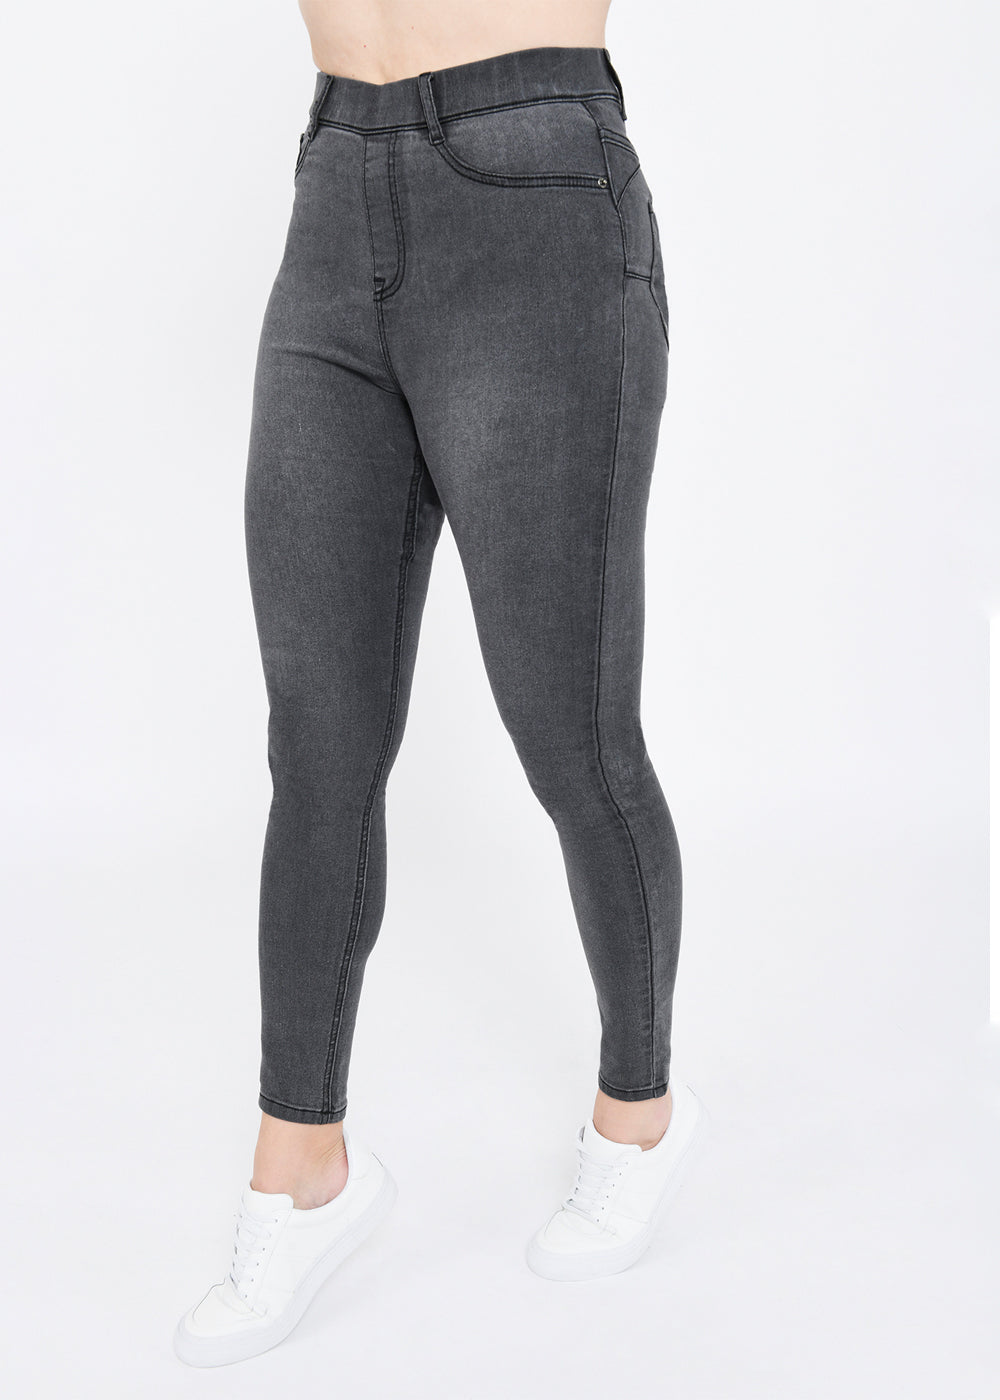 Grey Ankle Grazer Jeggings